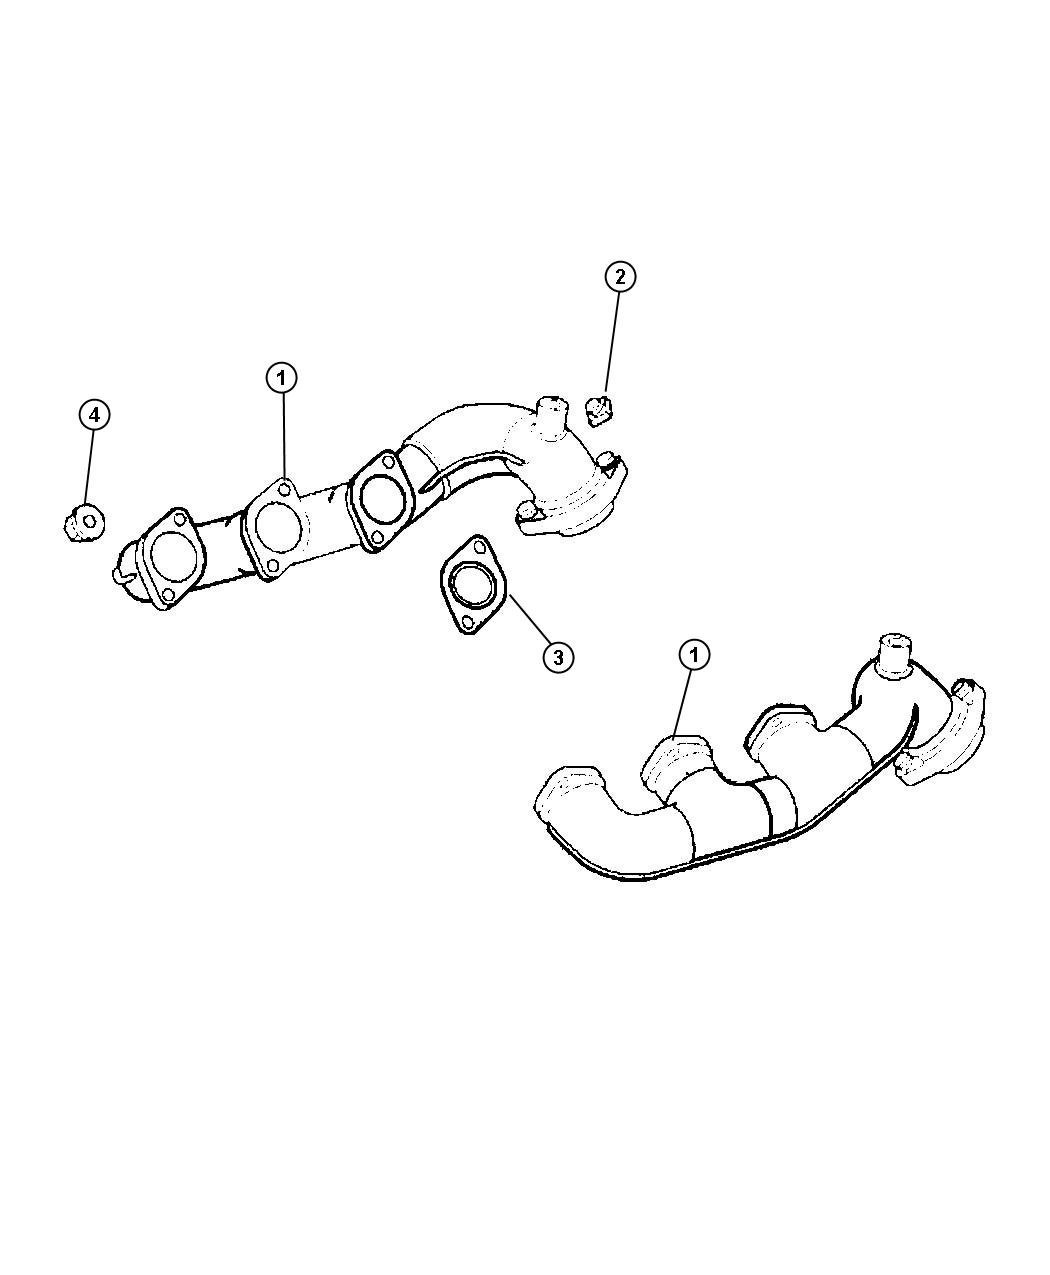 2006 Chrysler Crossfire Gasket. Exhaust manifold